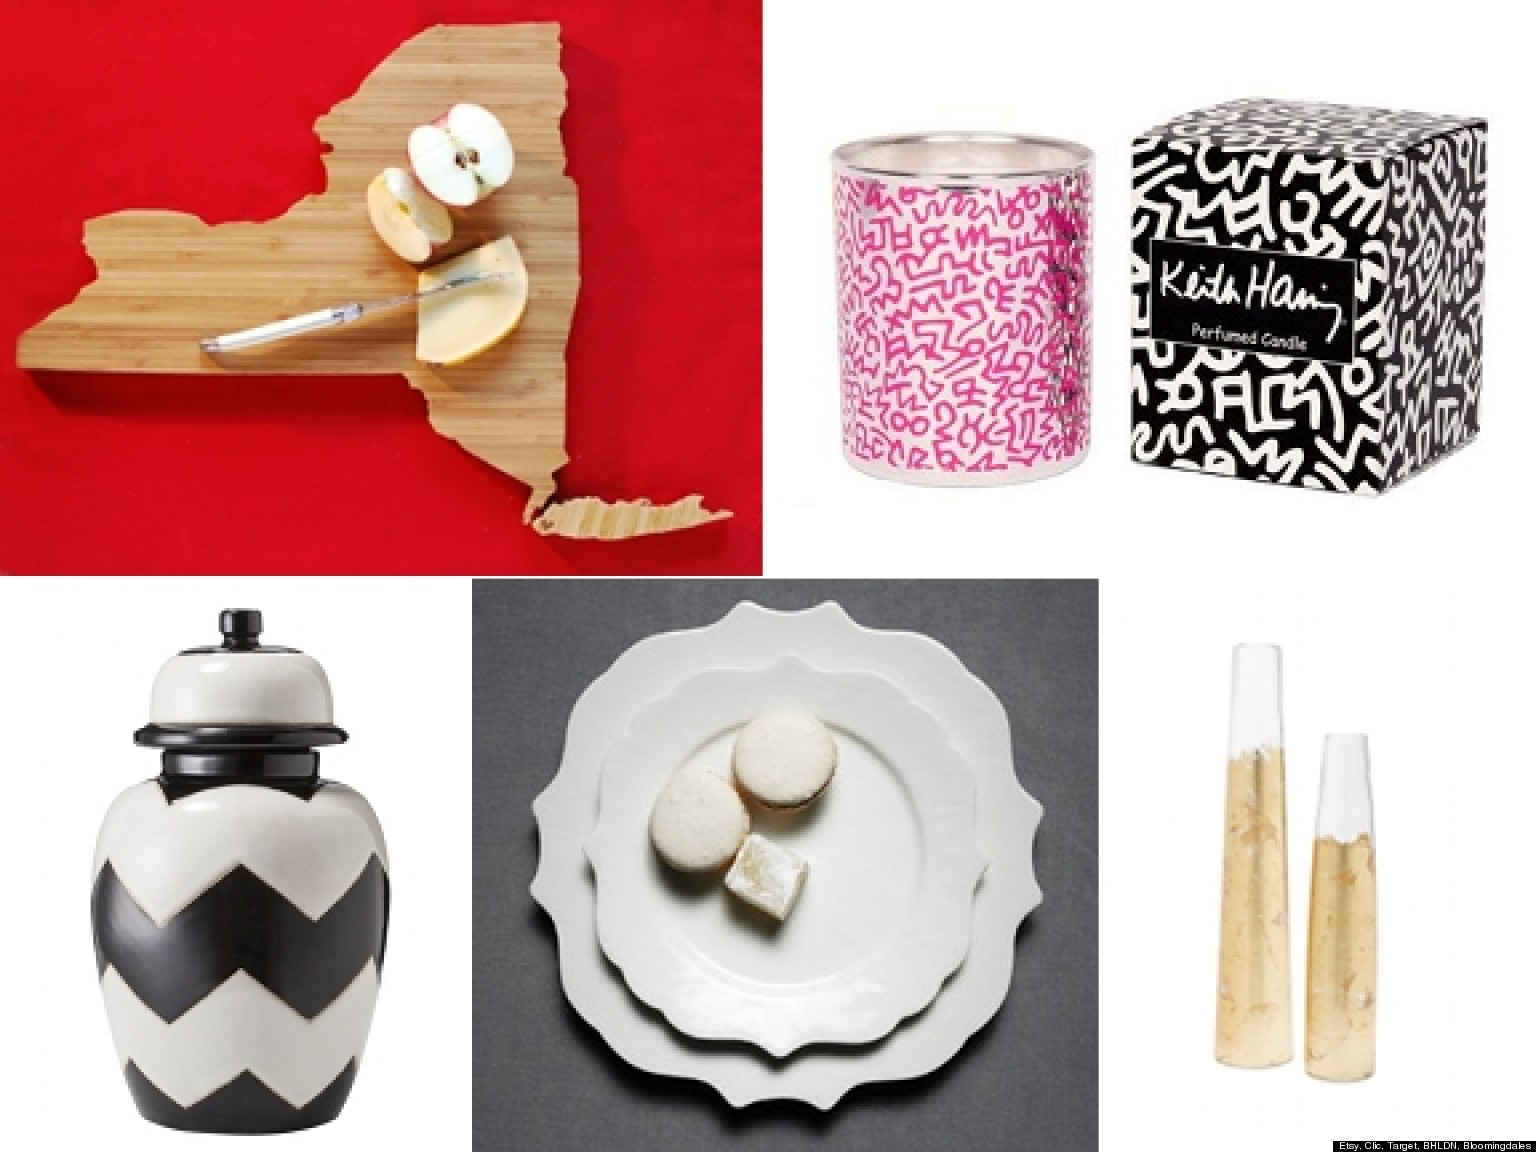 Wedding Gifts For Korean Parents : Holiday Gift Guide 2012: 31 Entertaining Essentials (PHOTOS ...